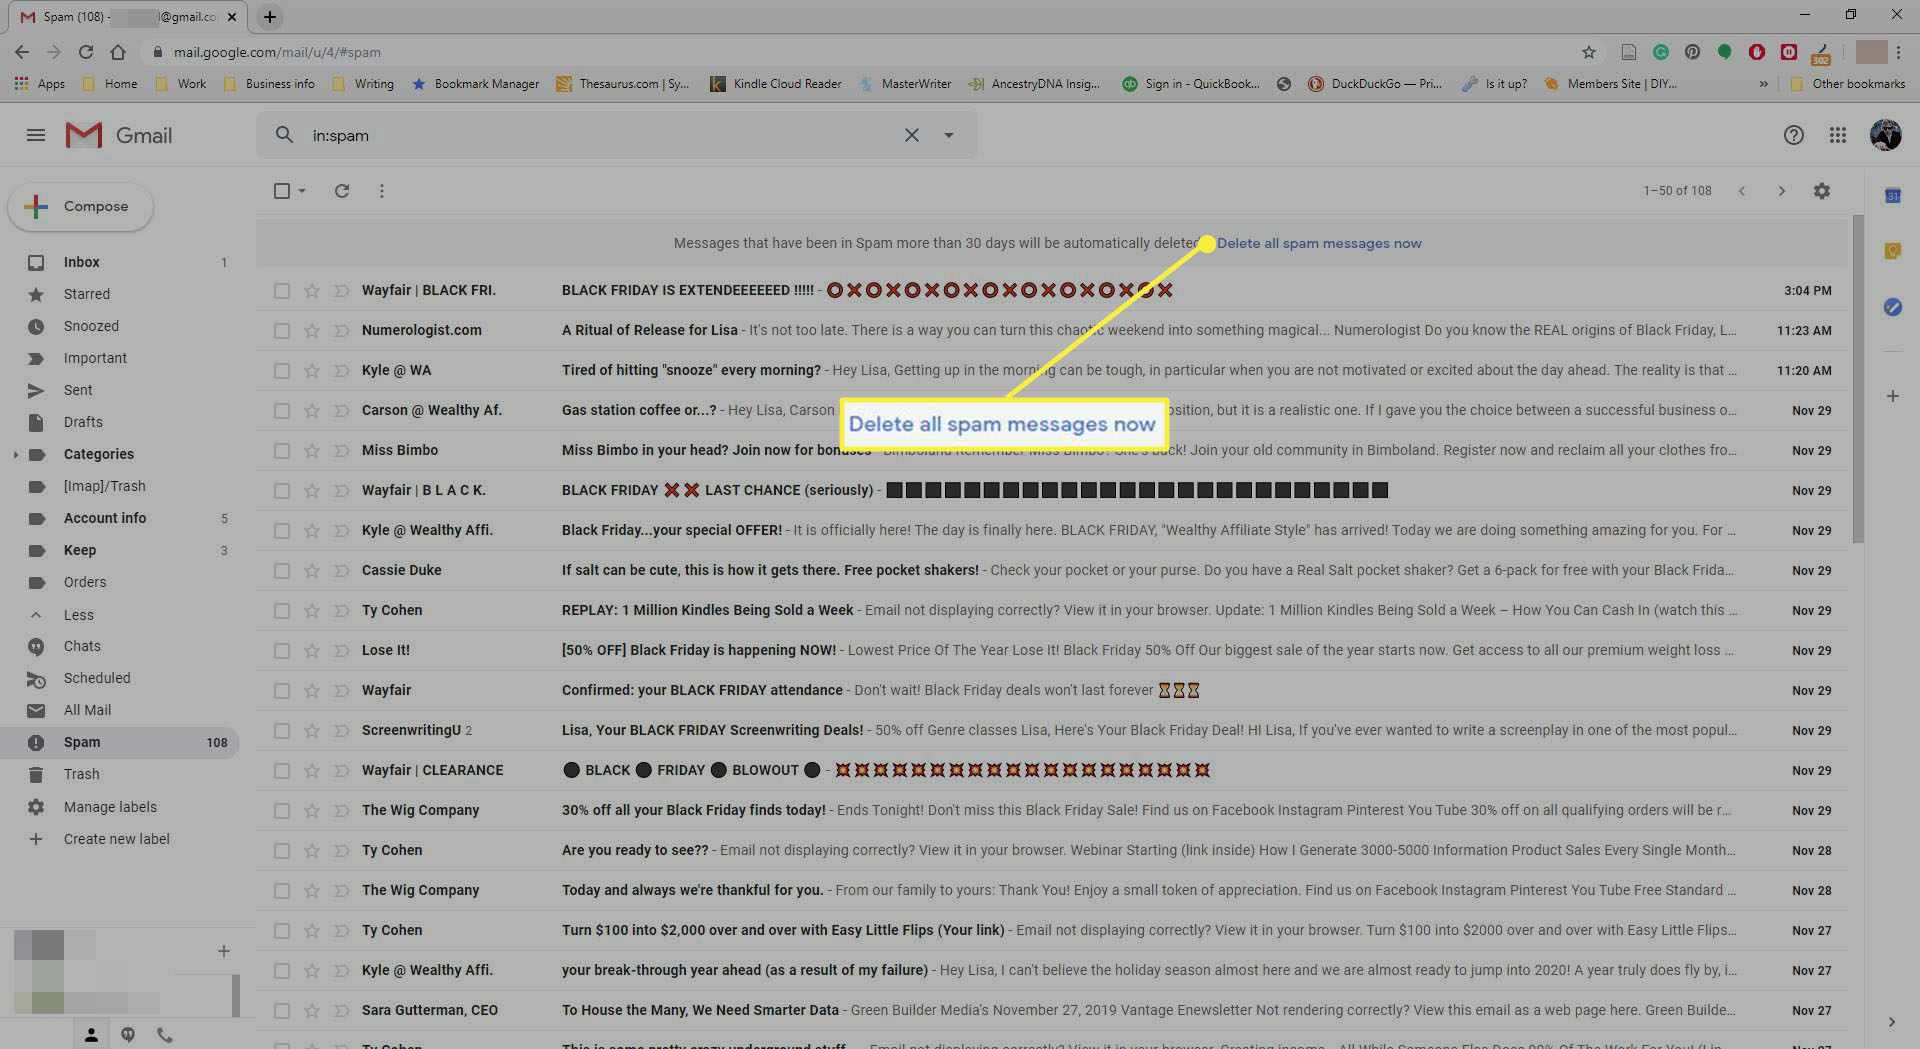 Selecting to delete all spam in Gmail.